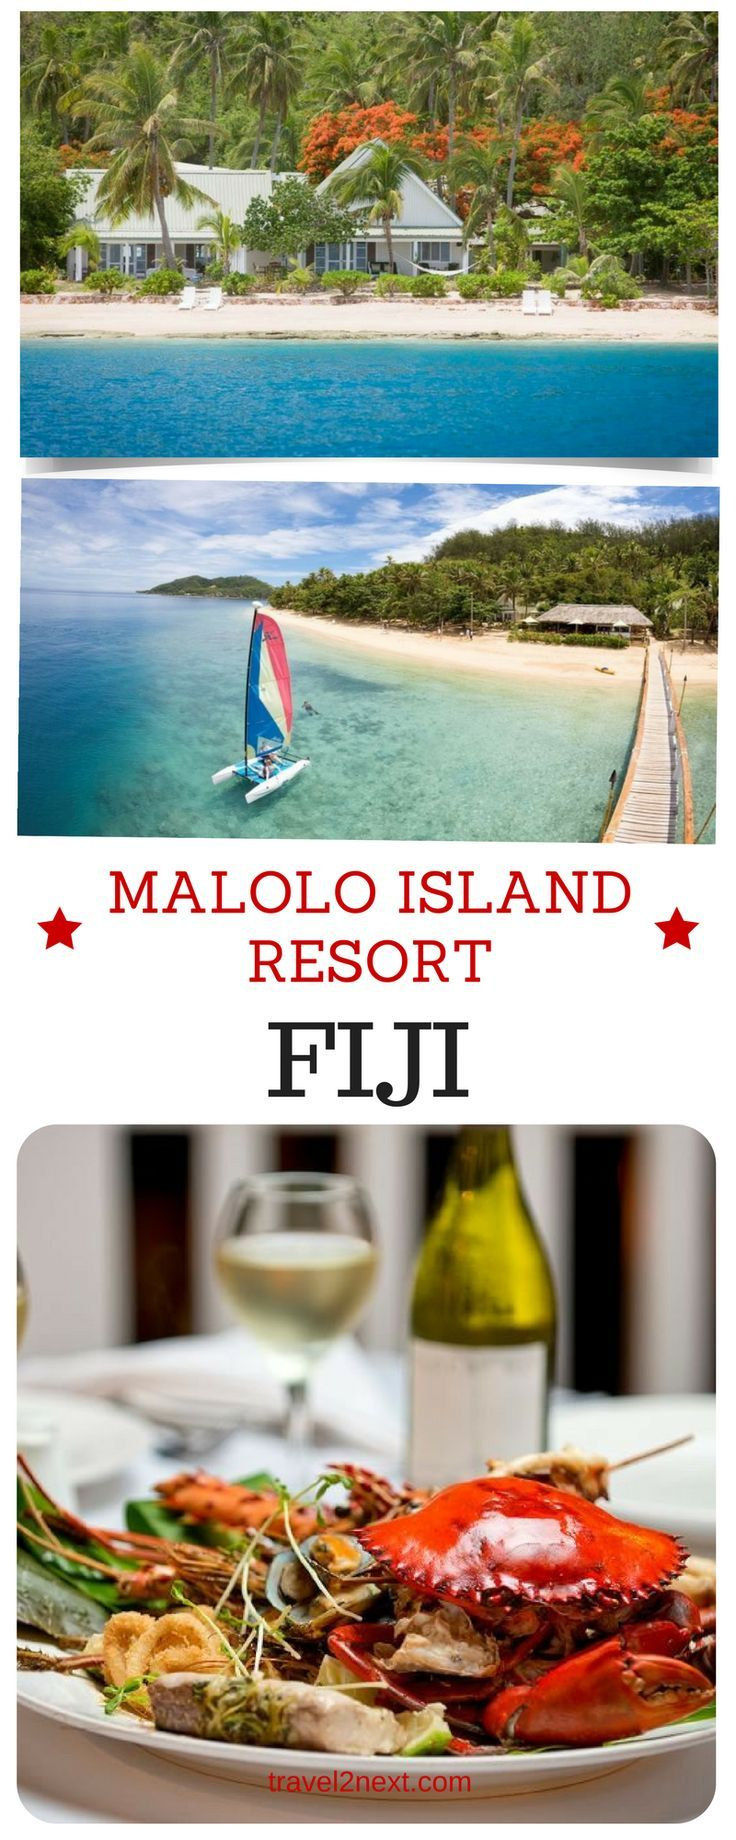 Malolo Island Resort|Fiji Resorts on the Water. There are so many island resorts in Fiji it's sometimes quite difficult to decide which one to choose.: